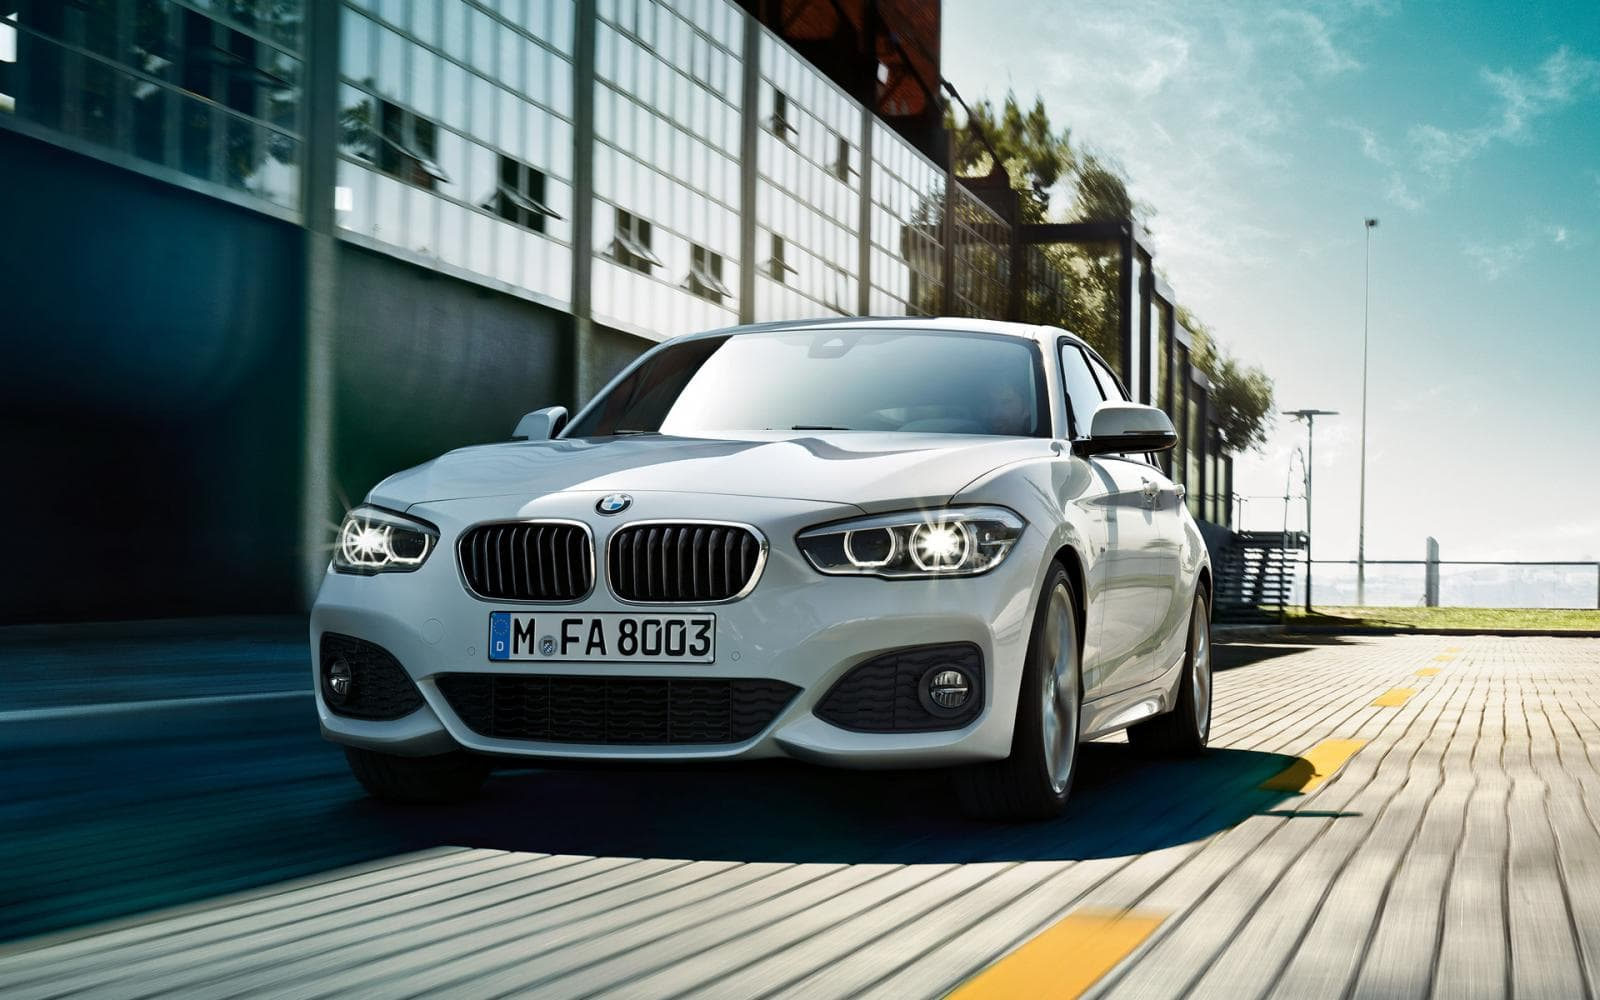 Bmw 1 Series Wallpapers Free Download